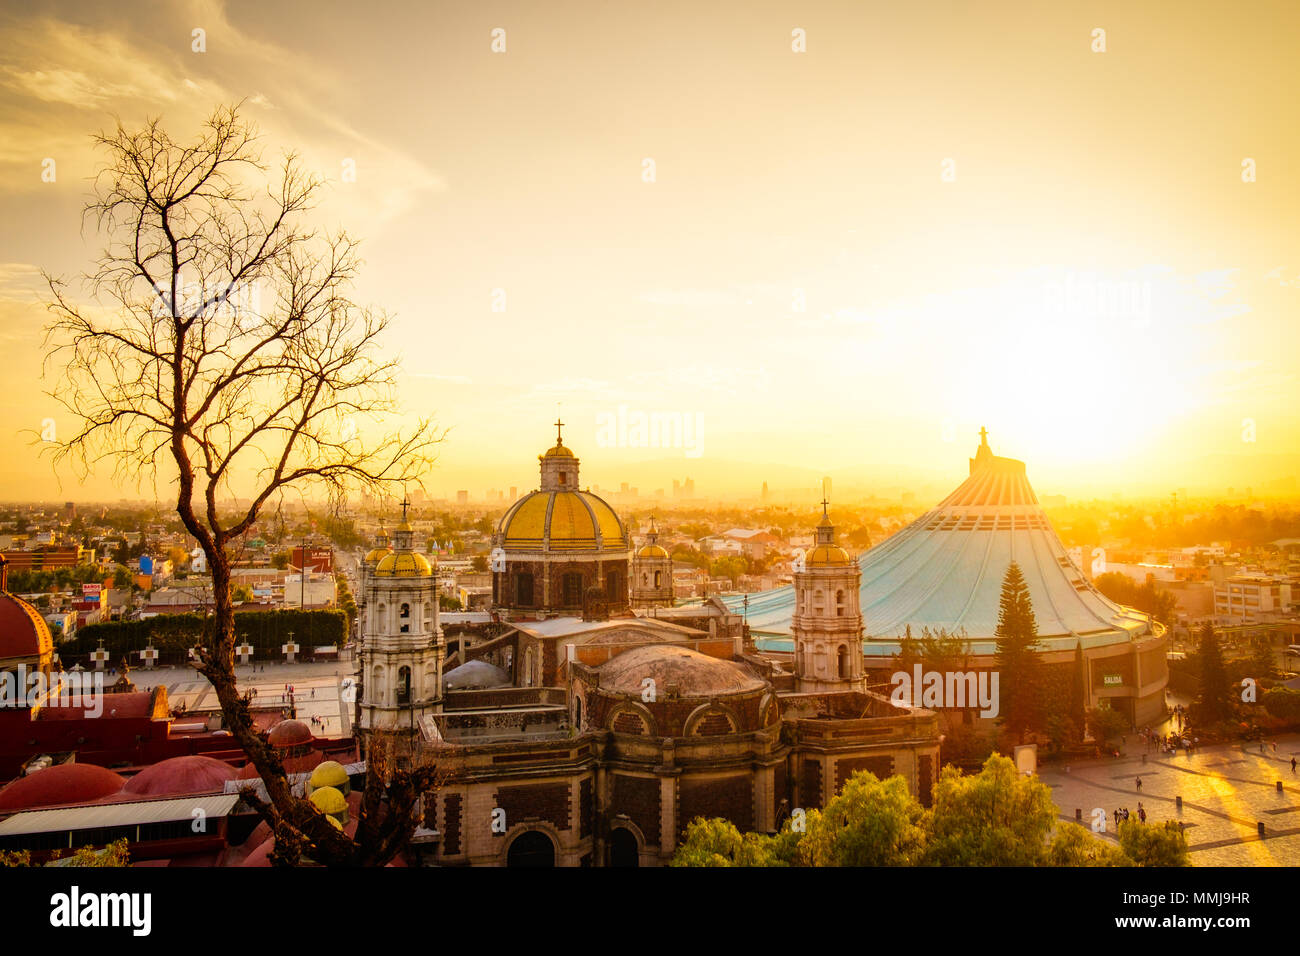 Scenic view at Basilica of Guadalupe with Mexico city skyline at sunset, Mexico - Stock Image